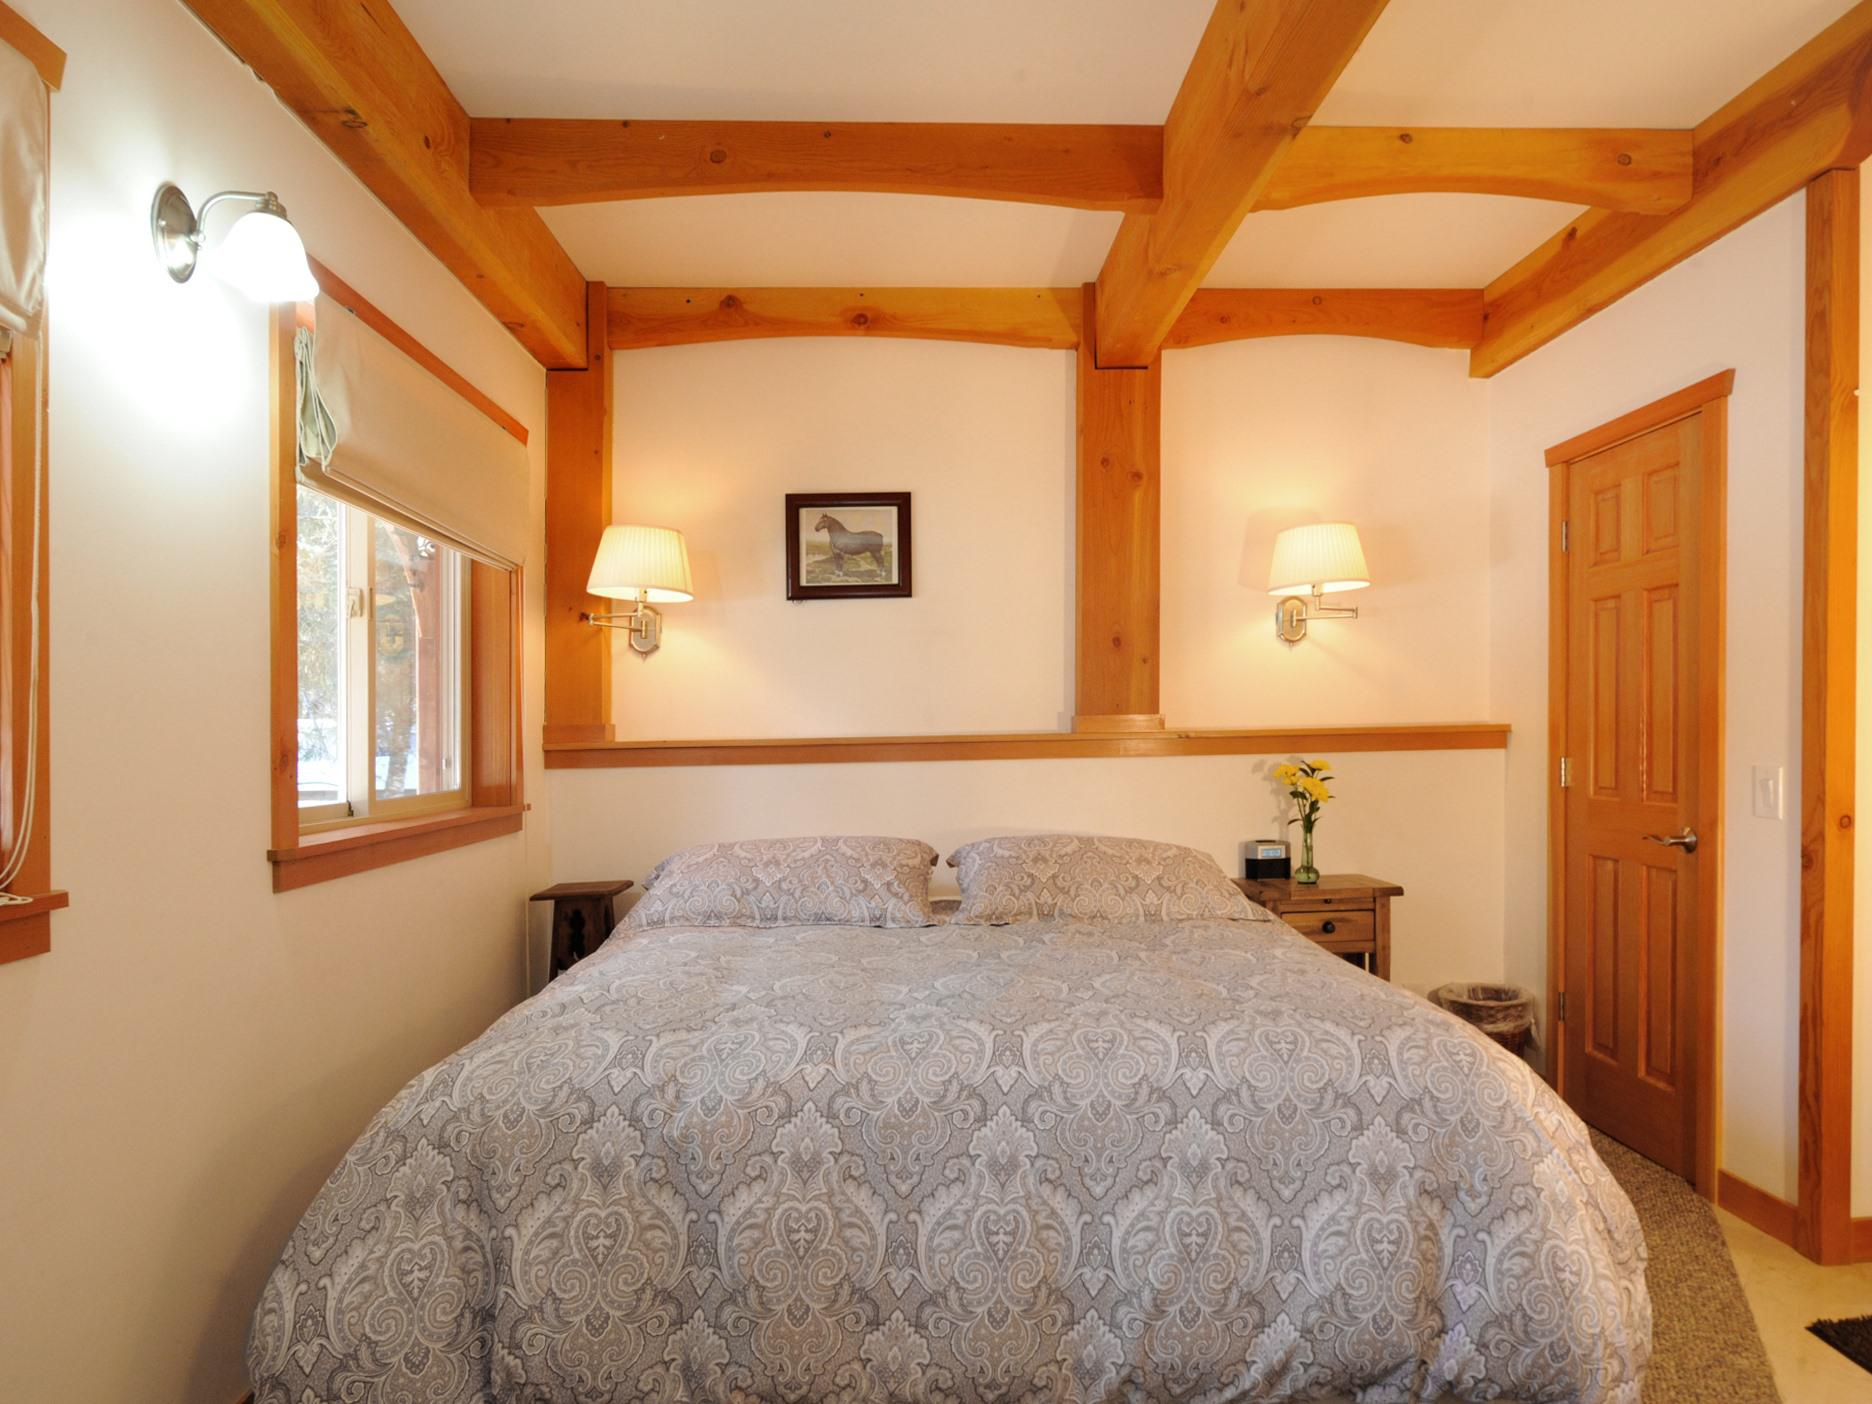 Coach Room - King bed, private ensuite bath